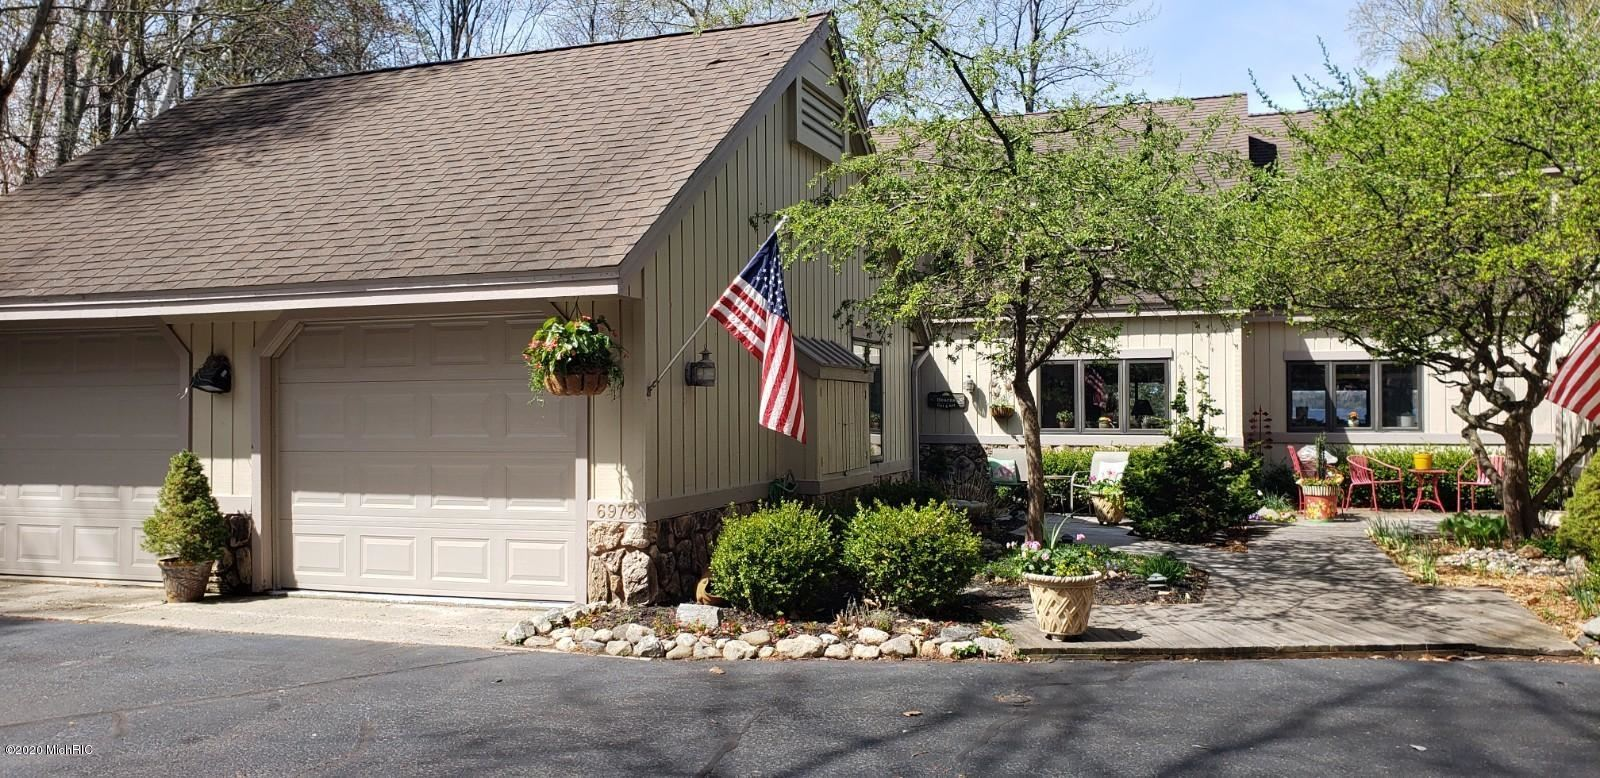 6978 W Partridge Circle, Ludington, MI 49431 - MLS#: 20035497